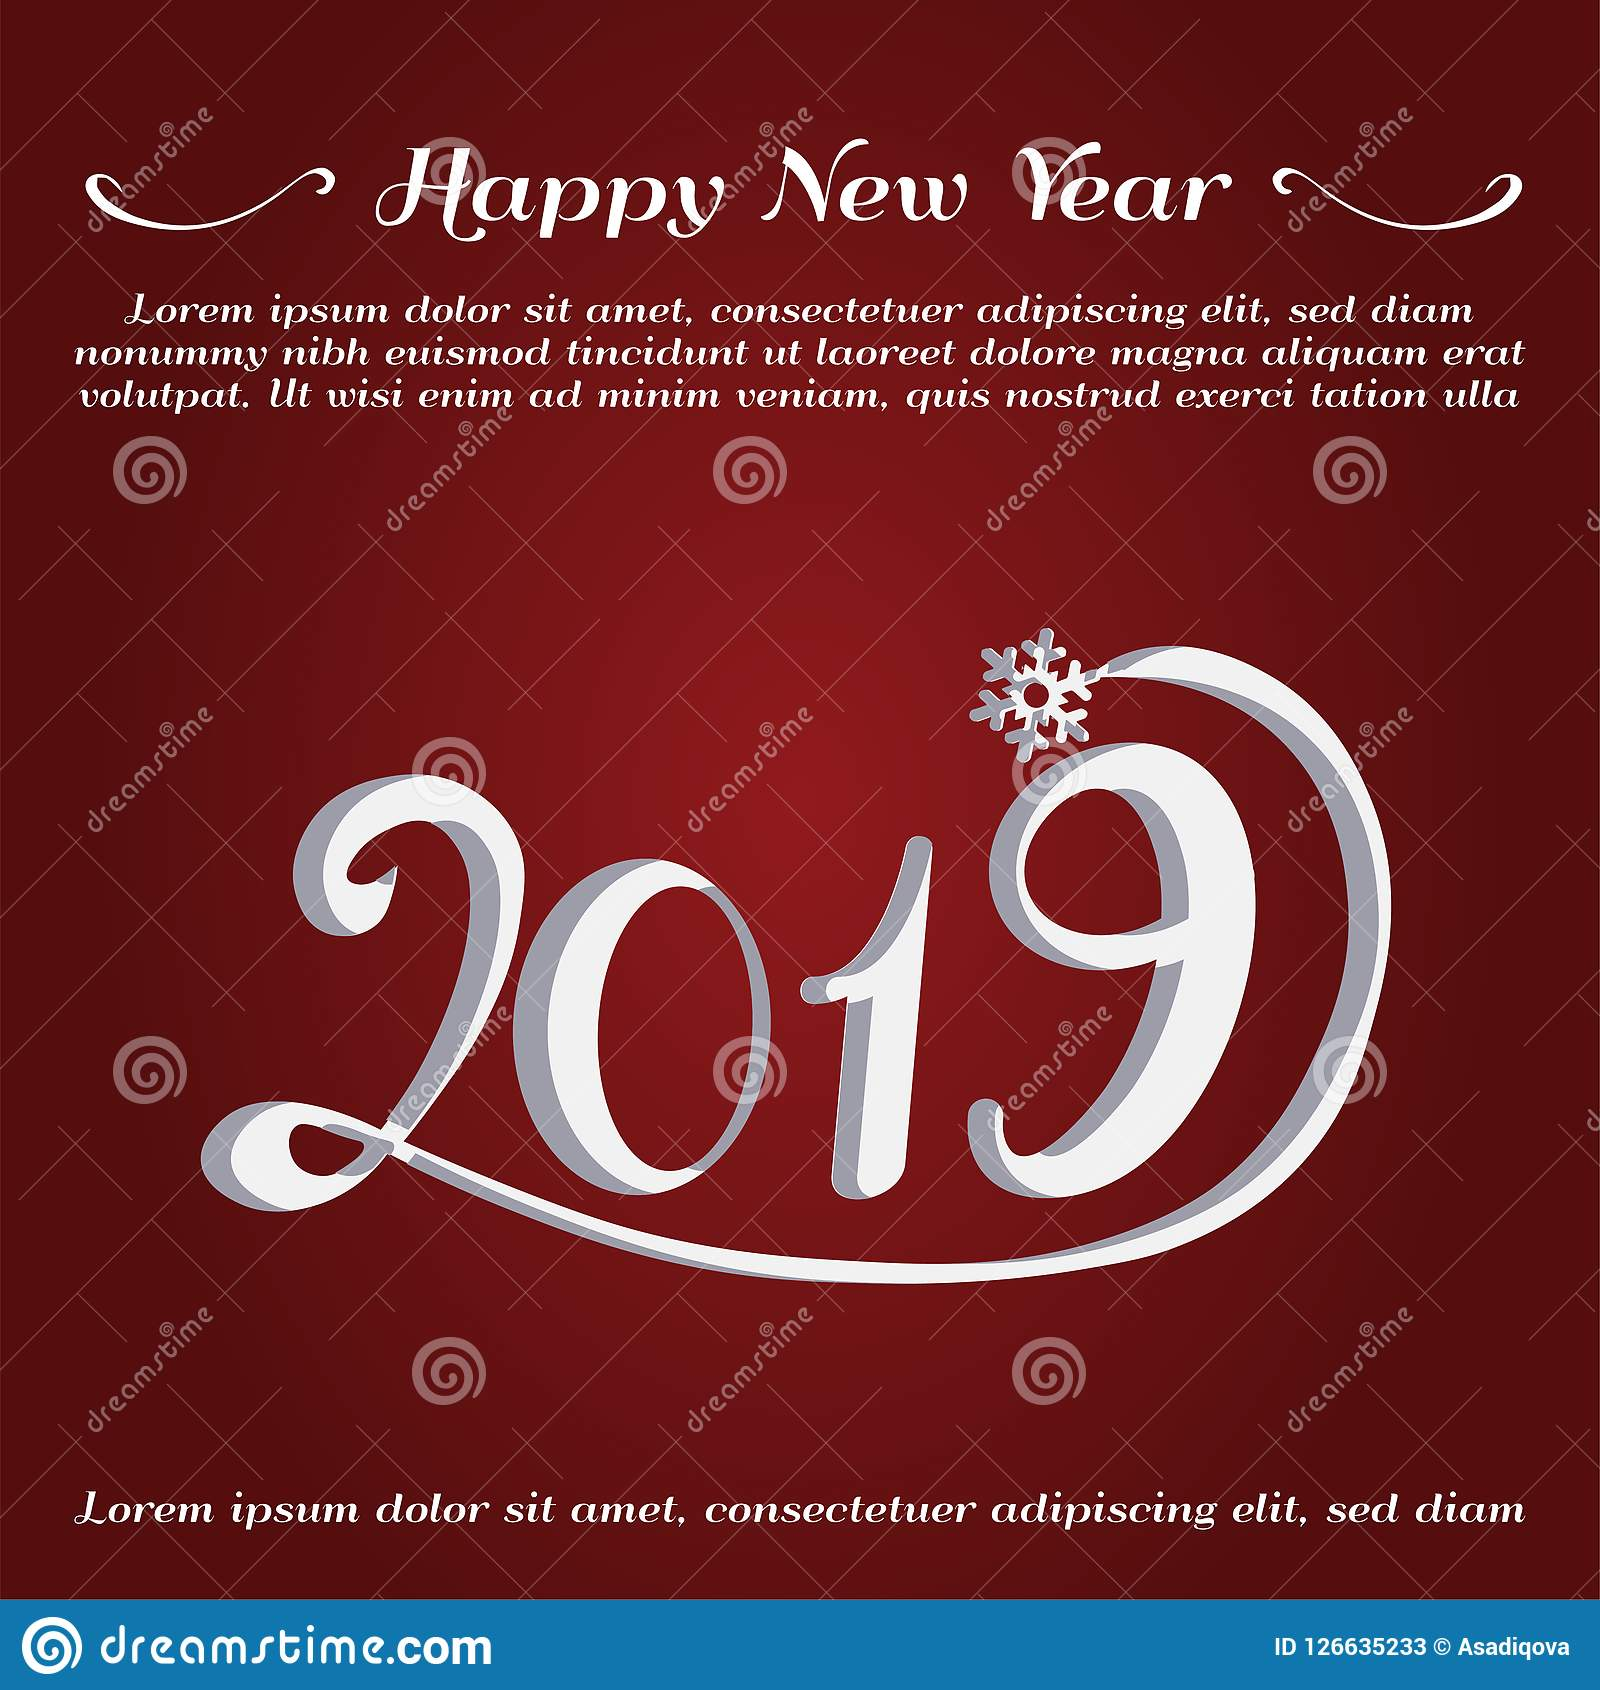 Happy New Year Greeting Card New Year 2019 Card Stock Vector Illustration Of Culture Animal 126635233